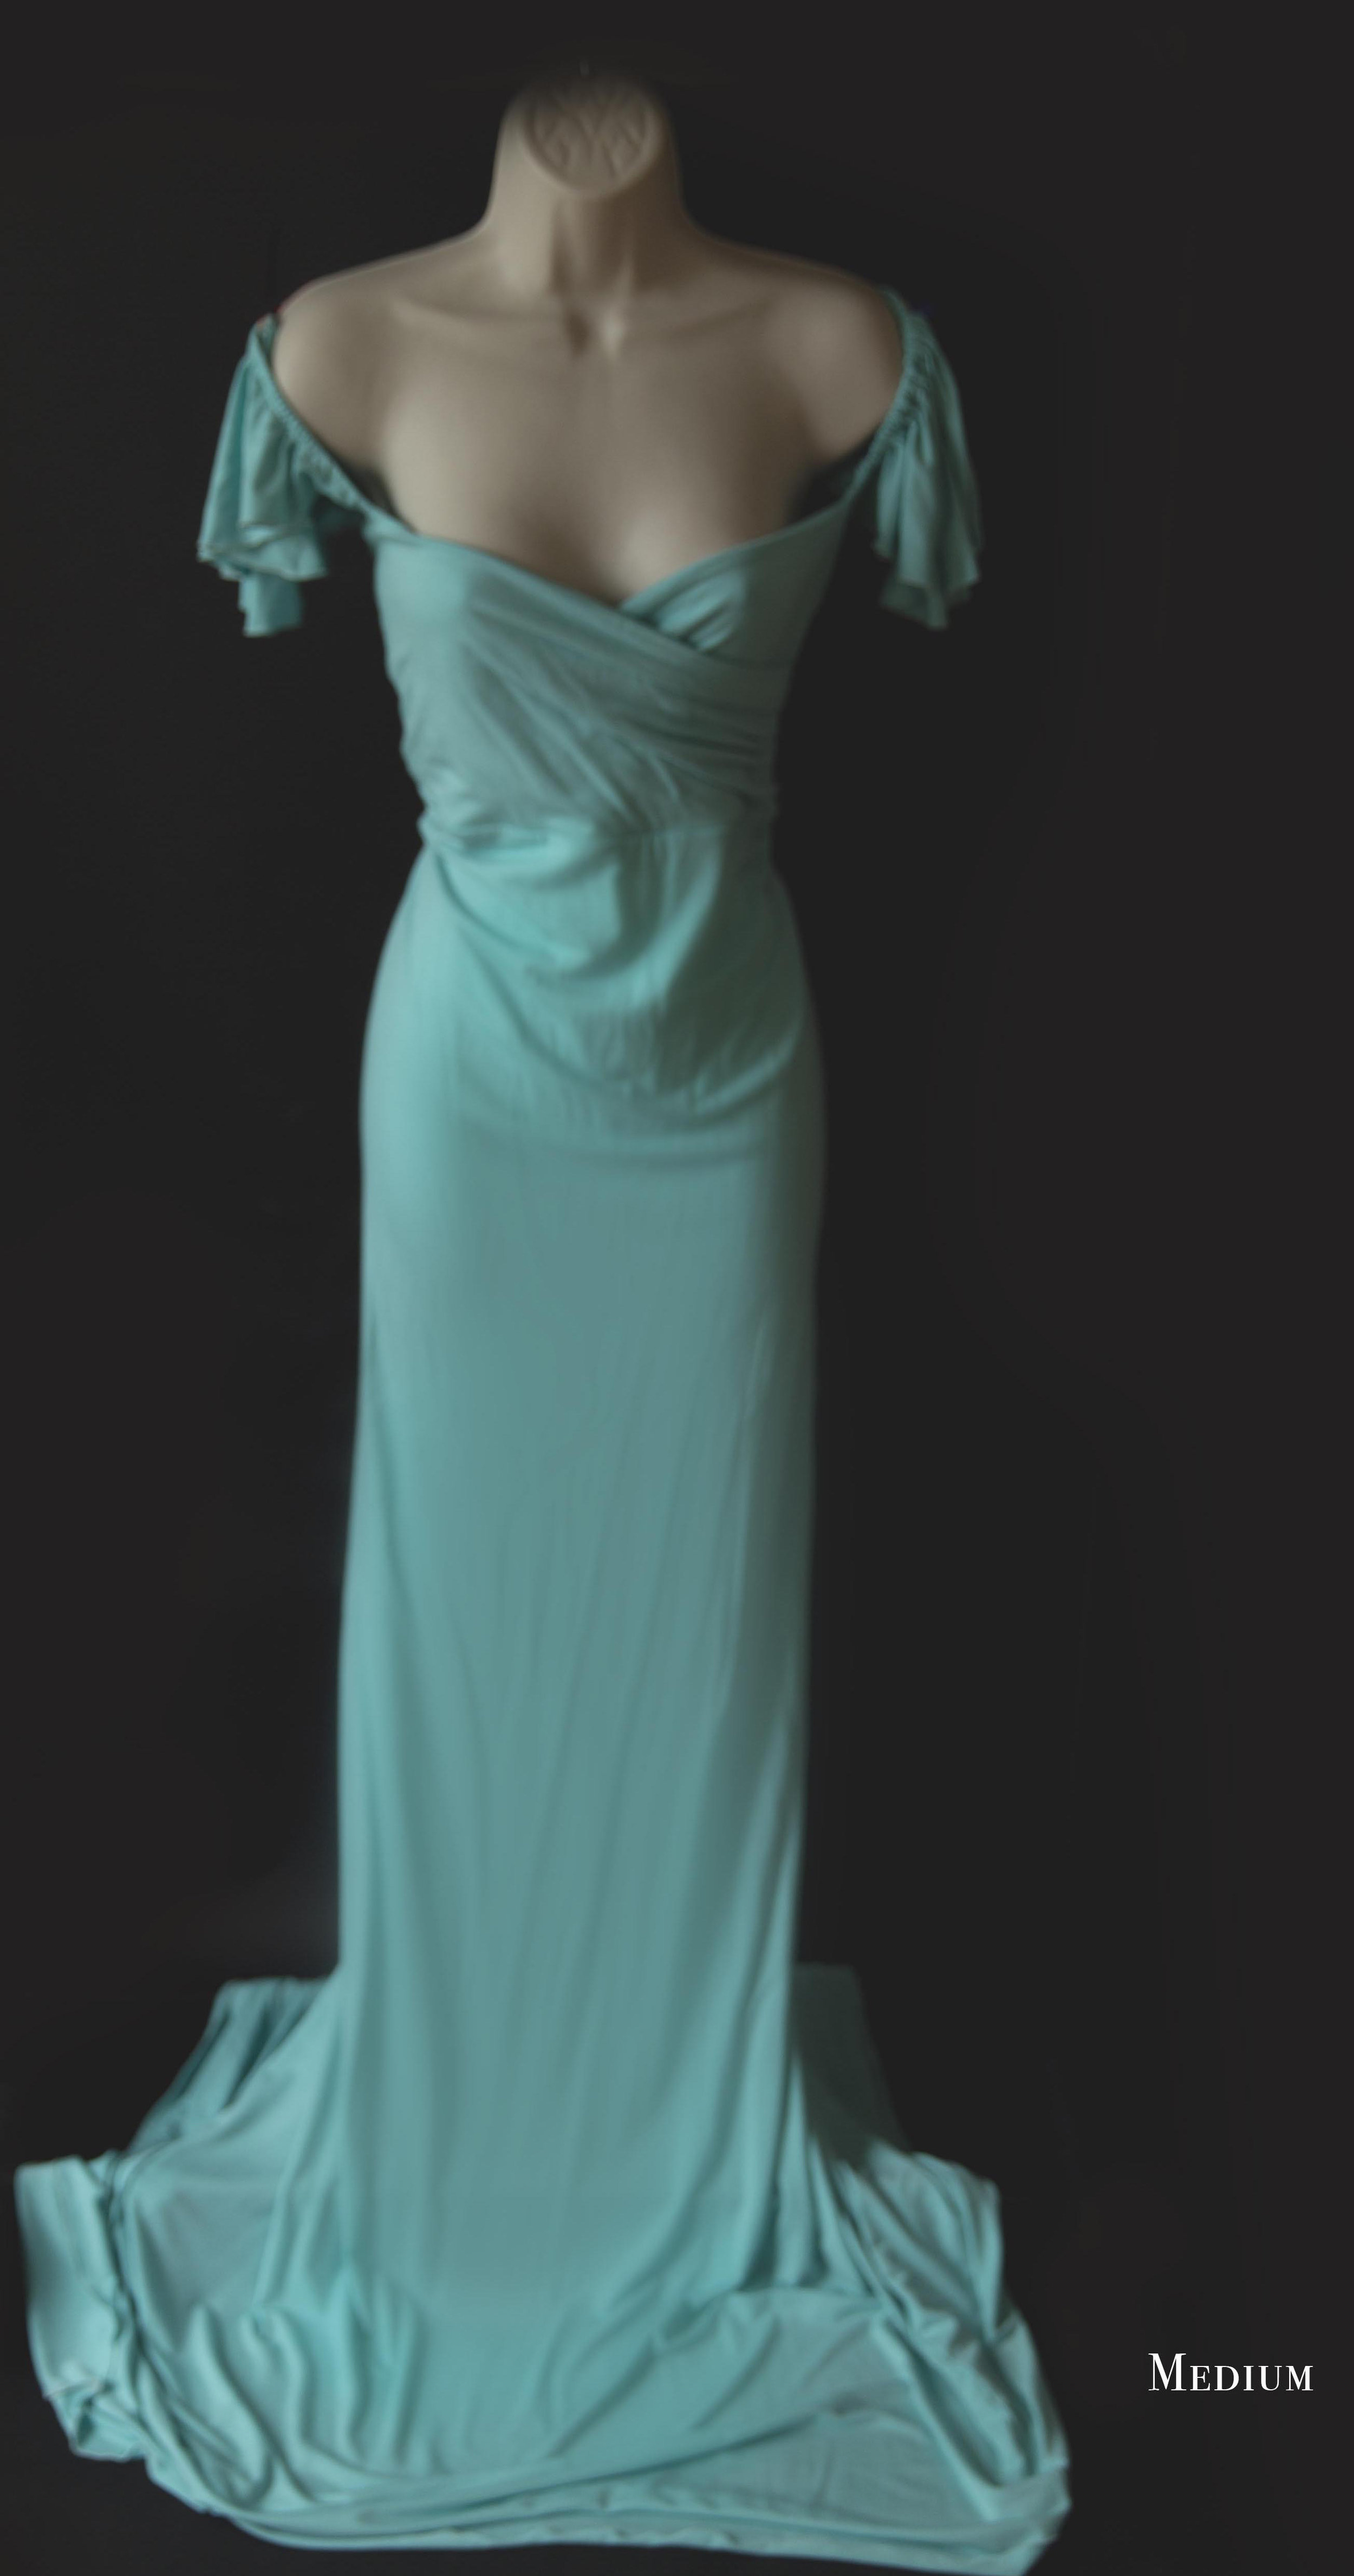 """Cora - MediumThis sweetheart neckline, drop sleeve, and form-fitting silhouette make this dress a perfect fit for the mom wanting to really show off those curves and feel beautiful.(Also in Emerald Green, see the """"Tara"""" below)"""